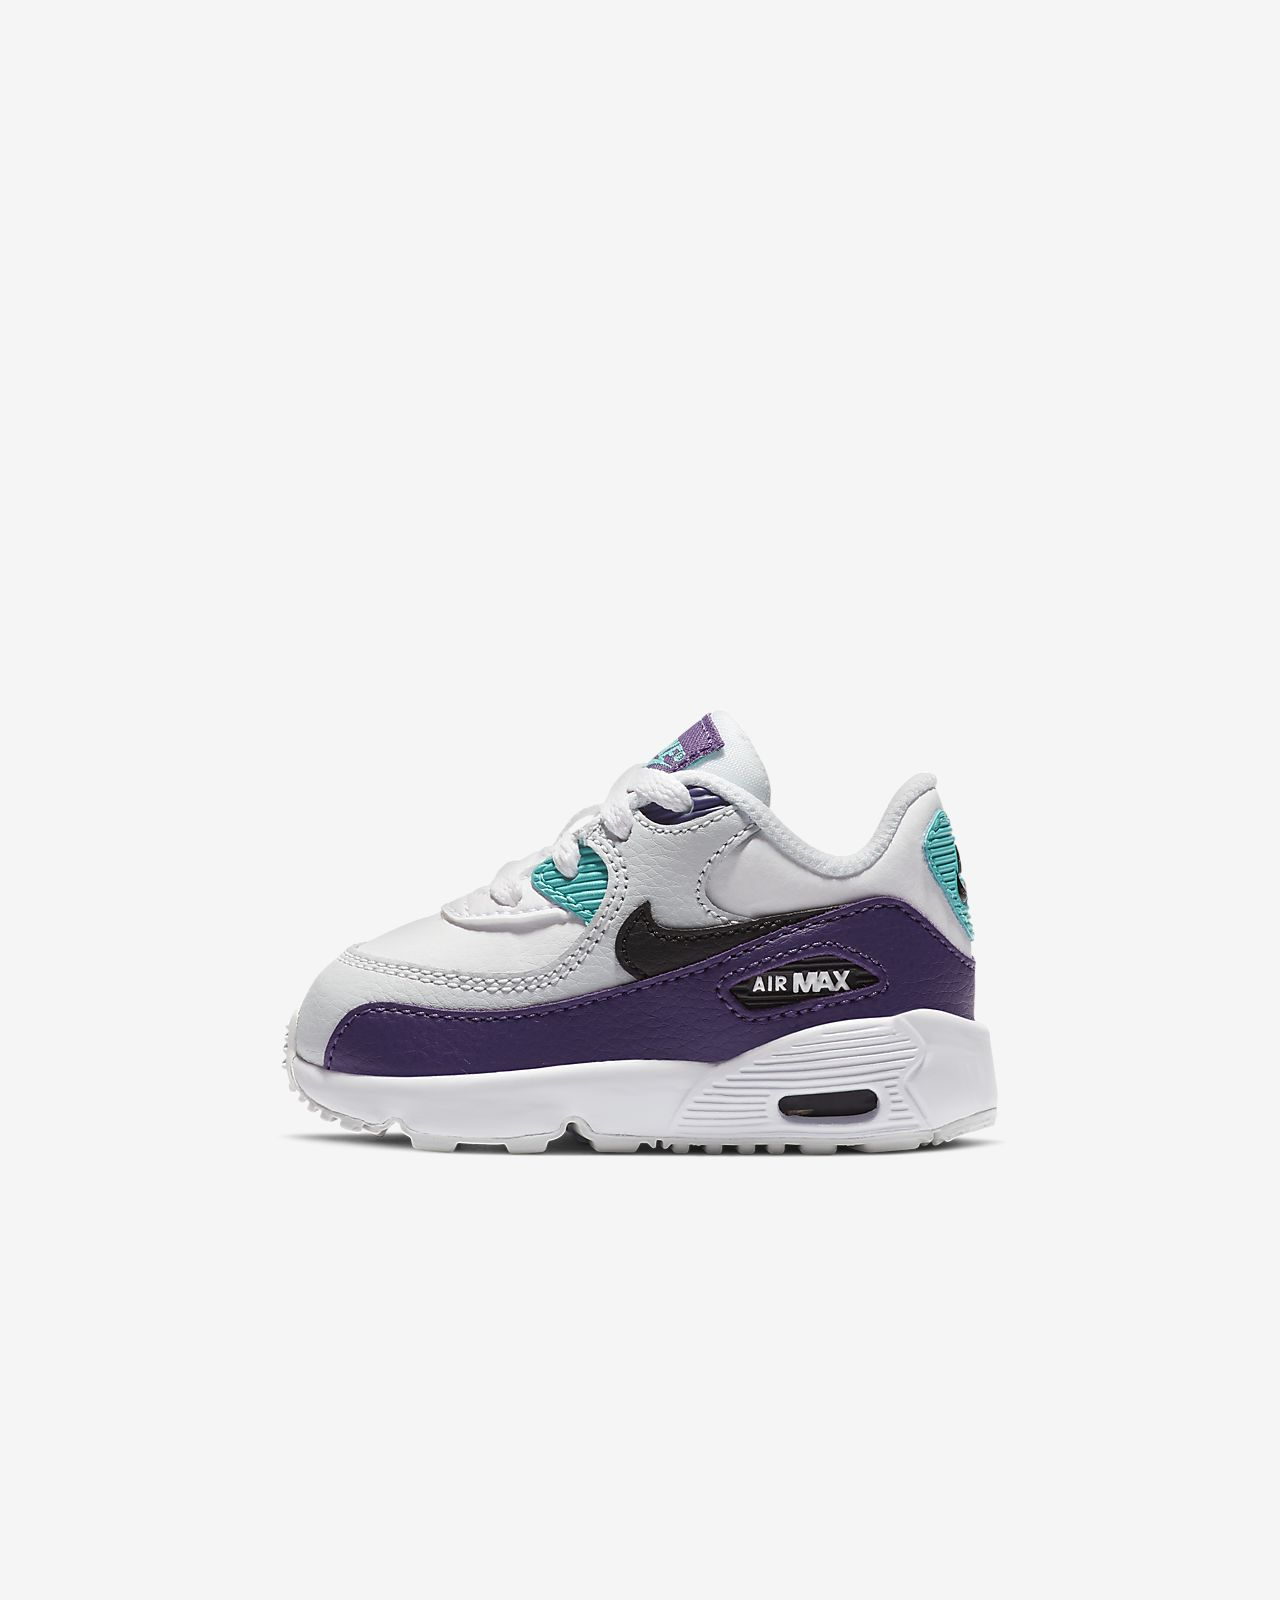 uk availability 5e6a1 7493c ... Sko Nike Air Max 90 Leather för baby små barn